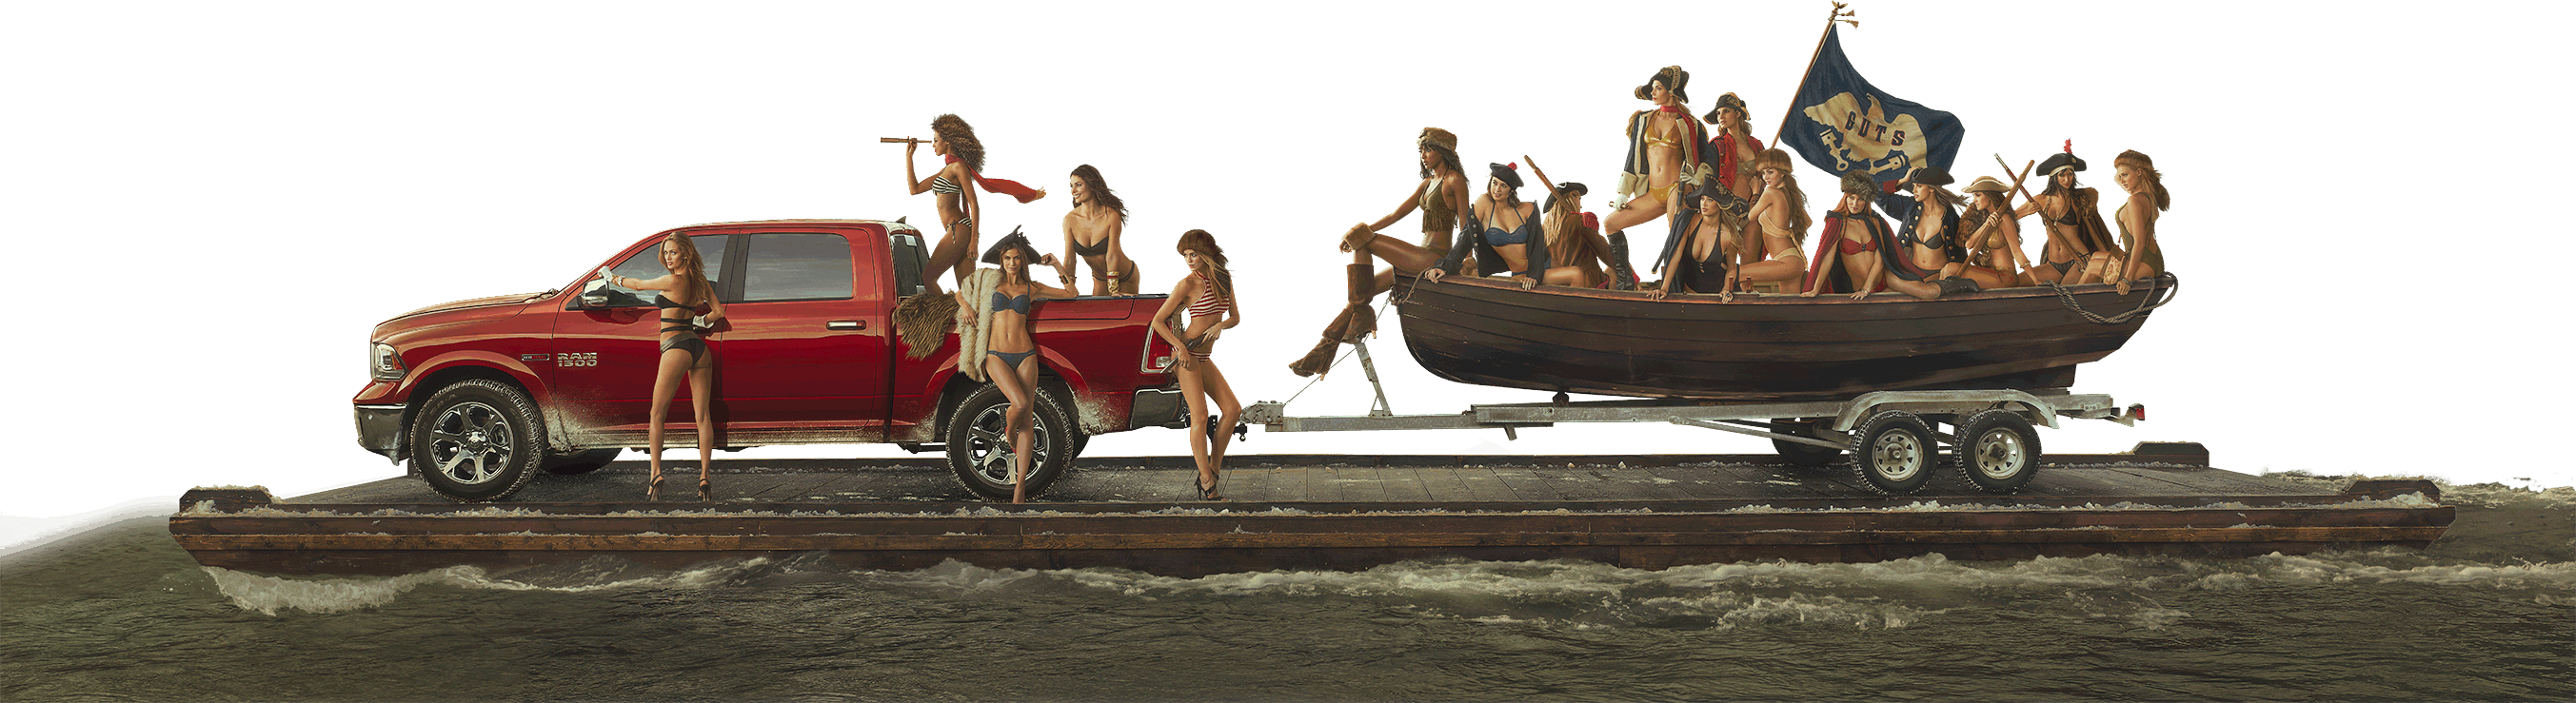 Web Painting - Ram Trucks 2015 Sports Illustrated Swimsuit Girls